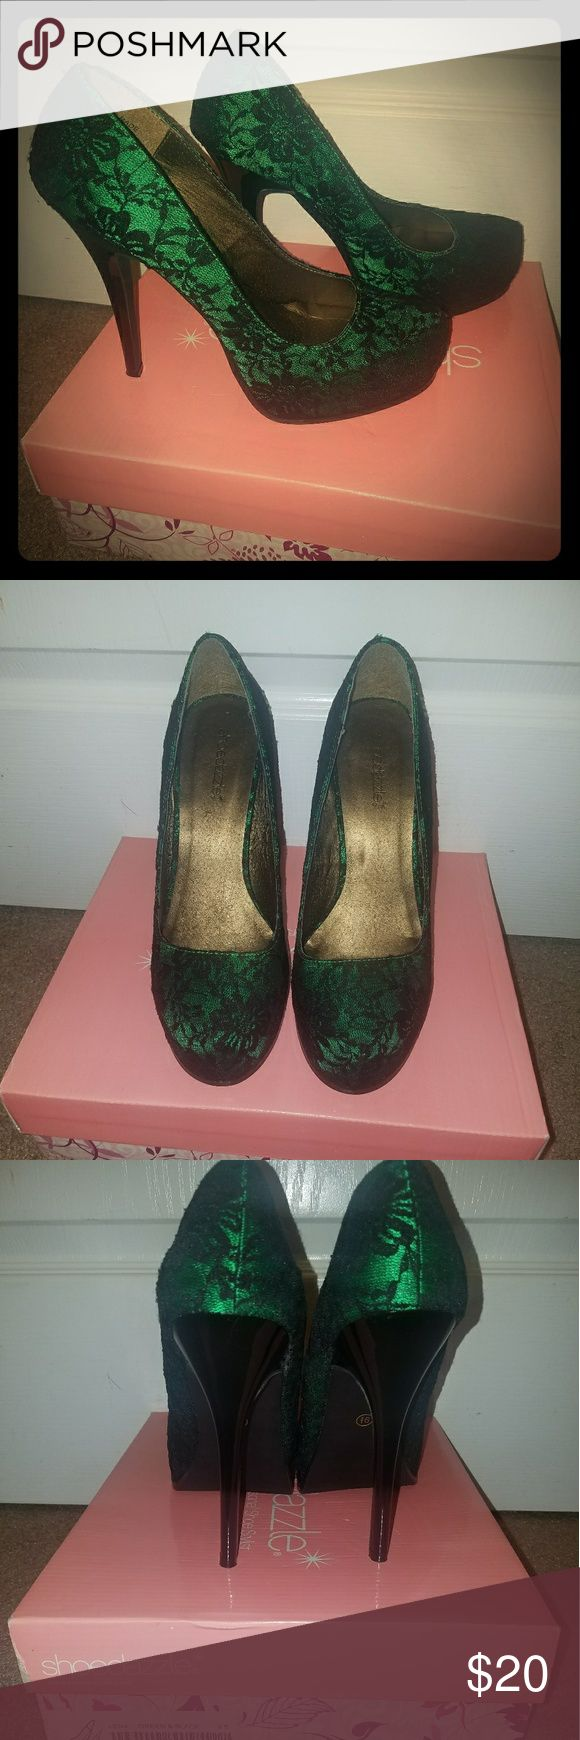 Shoe Dazzle Lace Lena Heels Beautiful lace and emerald heels. Worn once. Stored in box, has dustbag. 4 inch heel 1 inch platform. Like new. Shoe Dazzle Shoes Heels